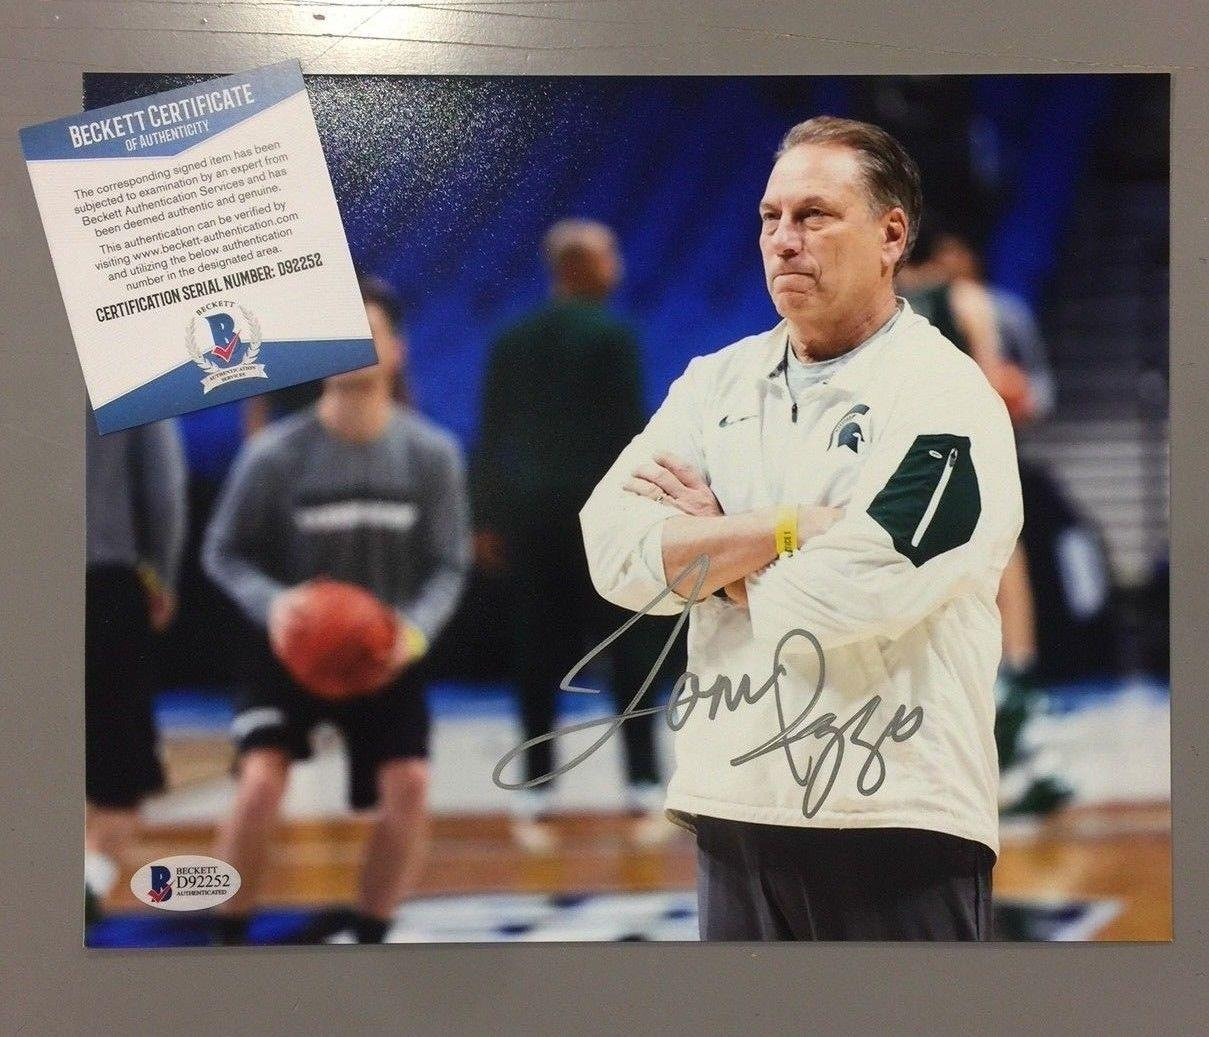 ce74a4ec541c Tom Izzo Signed Photograph - 8x10 Beckett D92252 - Beckett Authentication  at Amazon s Sports Collectibles Store